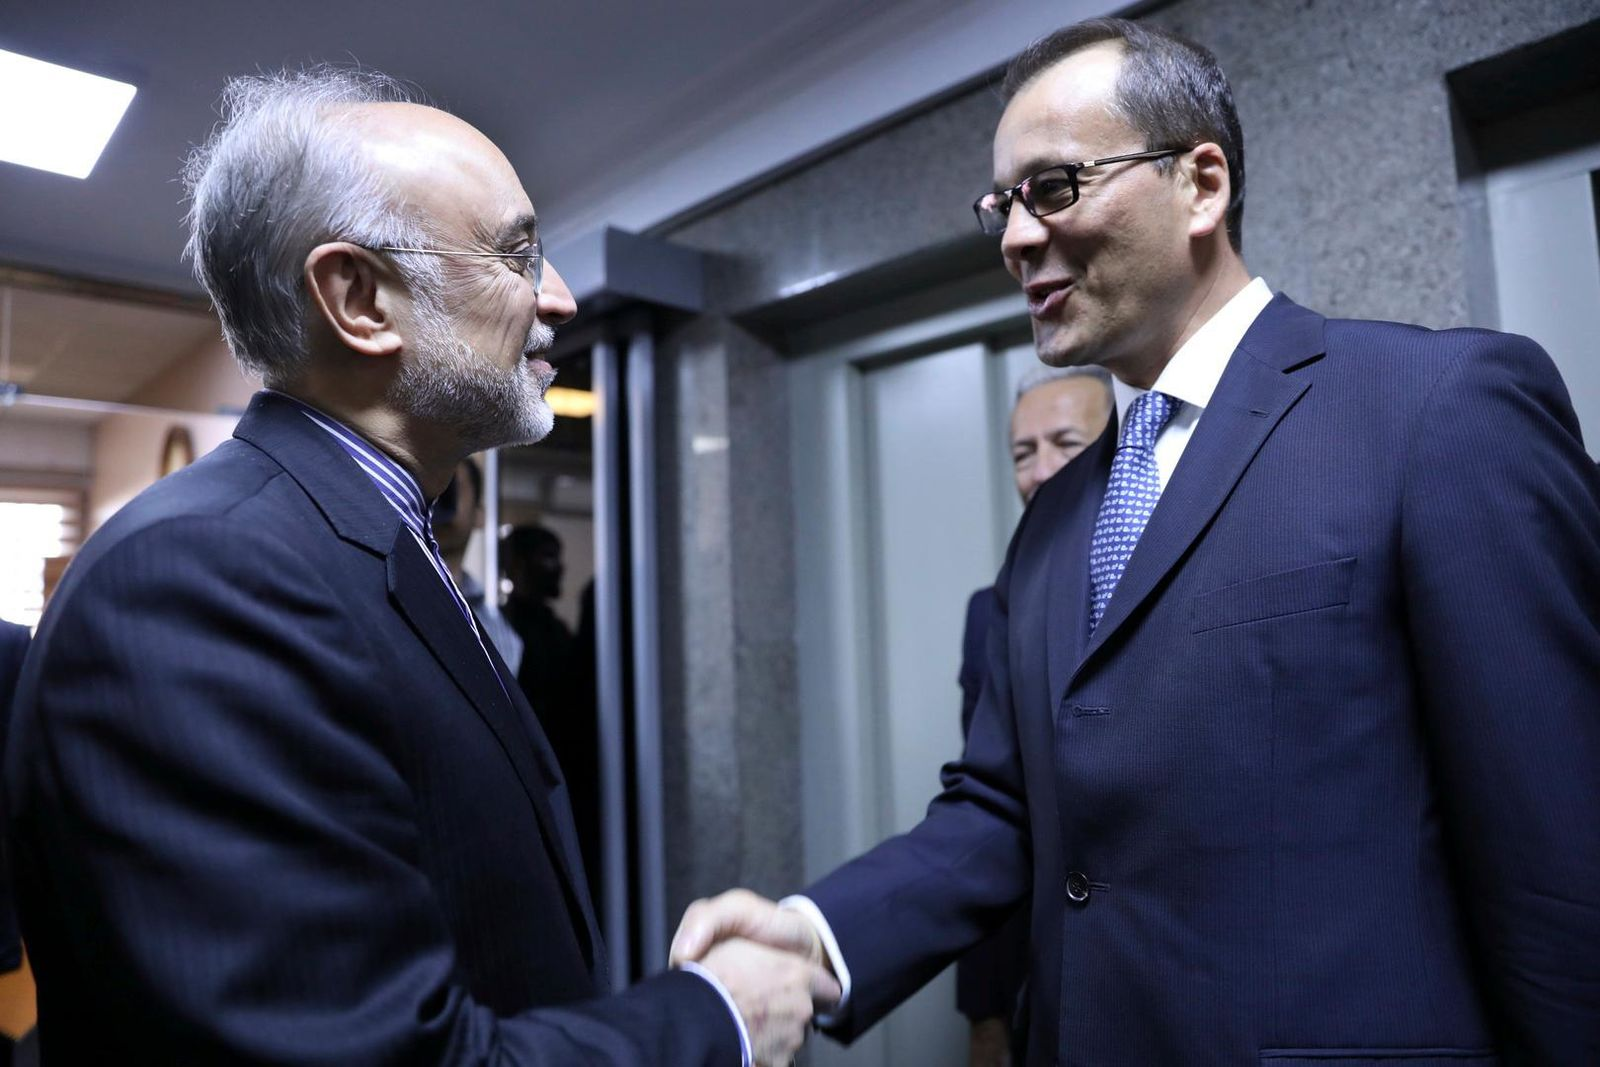 In this photo released by the Atomic Energy Organization of Iran, the head of Iran's nuclear program, Ali Akbar Salehi, left, shakes hands with acting chief of the International Atomic Energy Agency, IAEA, Cornel Feruta, during their meeting in Tehran, Iran, Sunday, Sept. 8, 2019. (Atomic Energy Organization of Iran via AP)